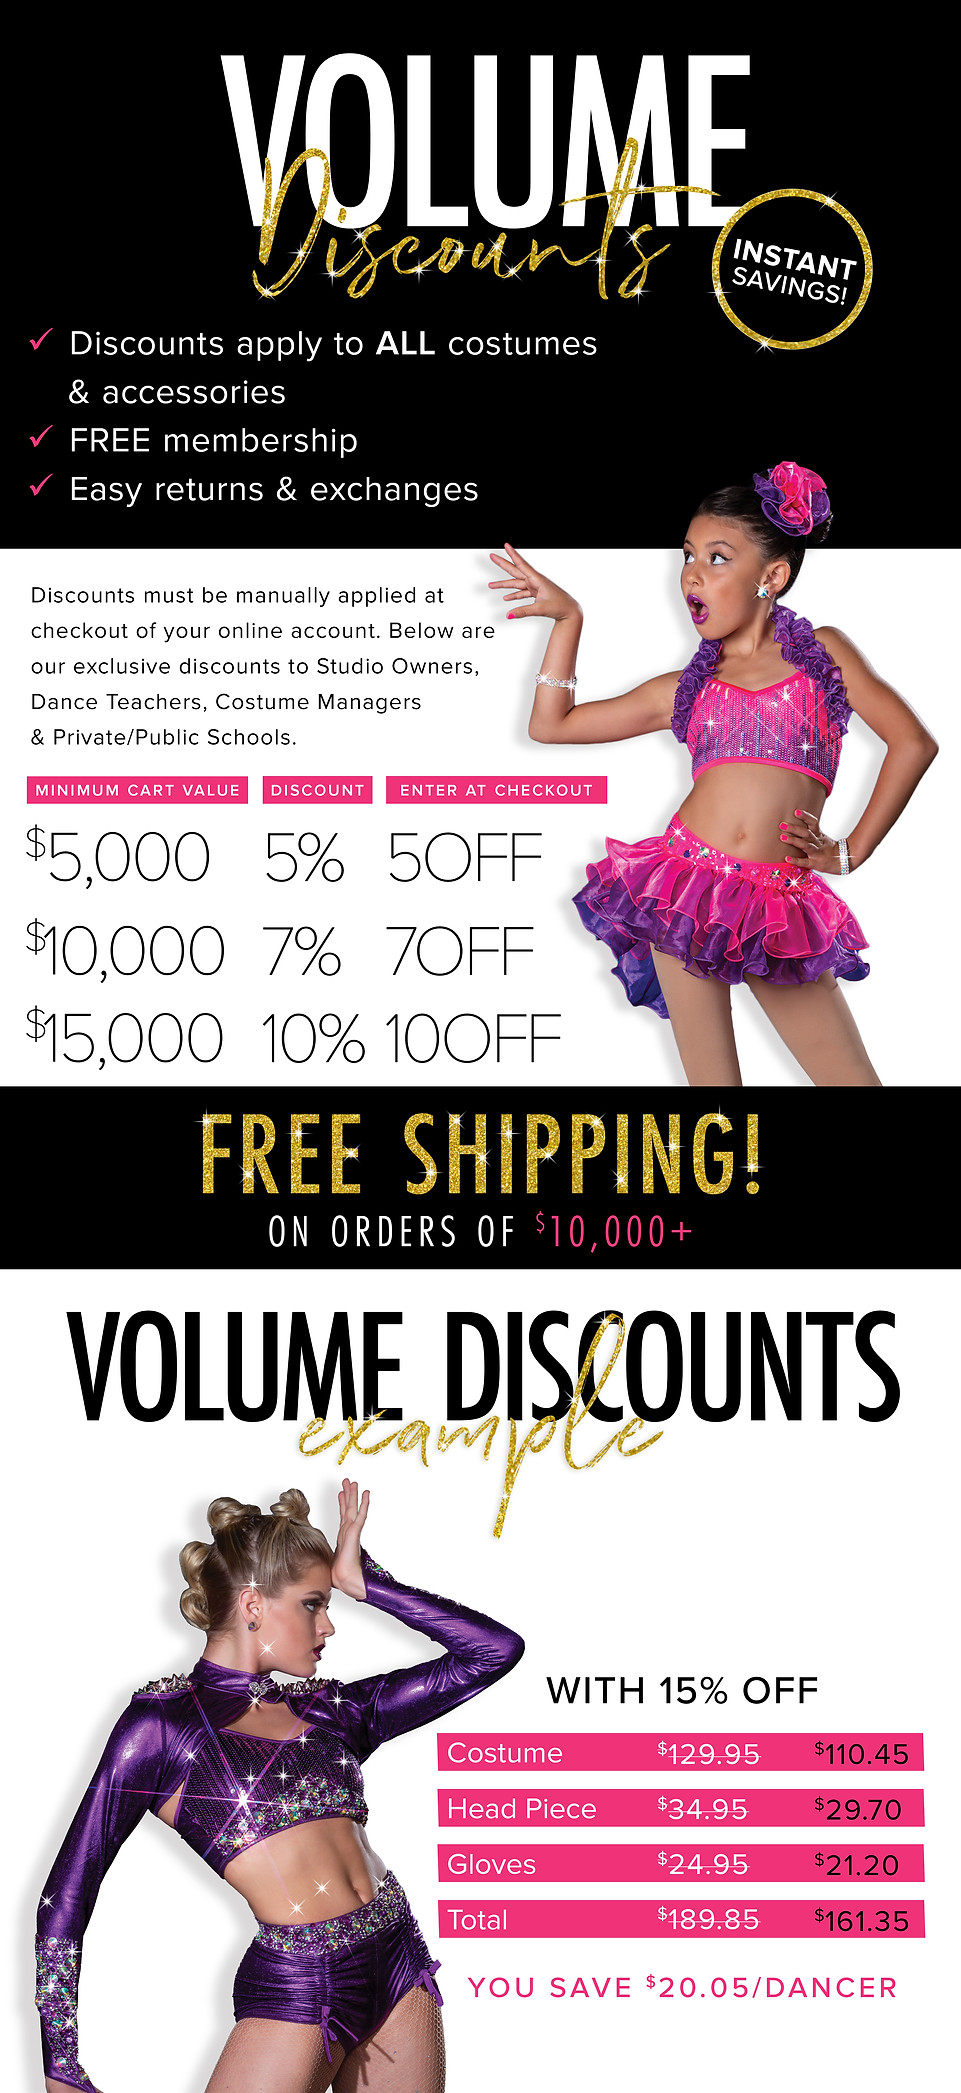 GLAMOUR_COSTUMES_VOLUME_DISCOUNTS_CHART.